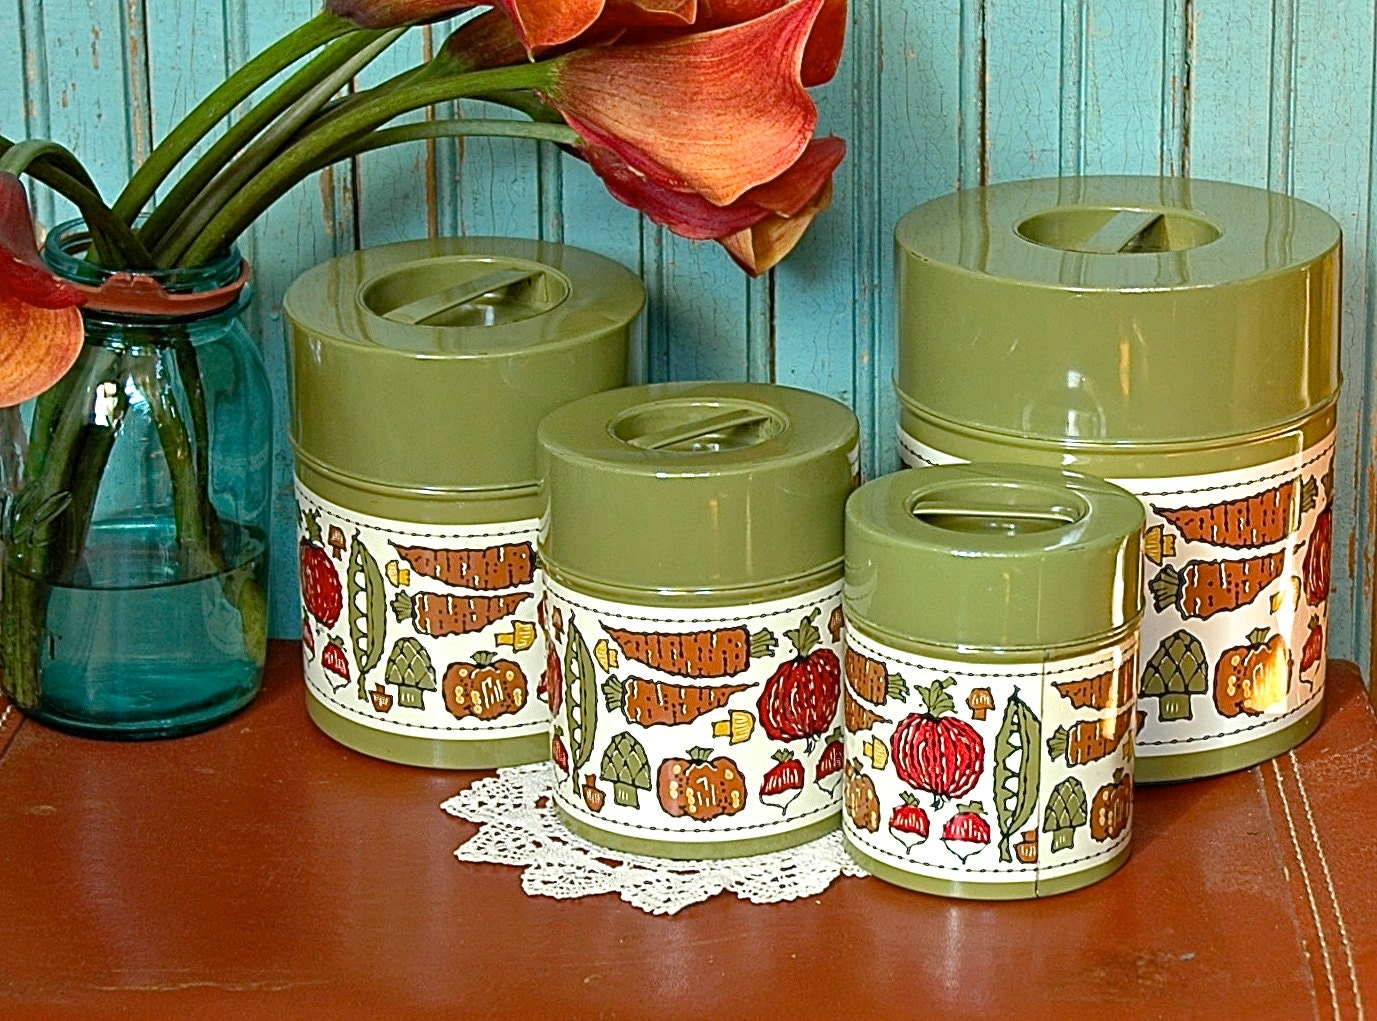 28 retro kitchen canister sets metal canister set vintage retro kitchen canister sets vintage kitchen tin canister set nesting tins 4 by